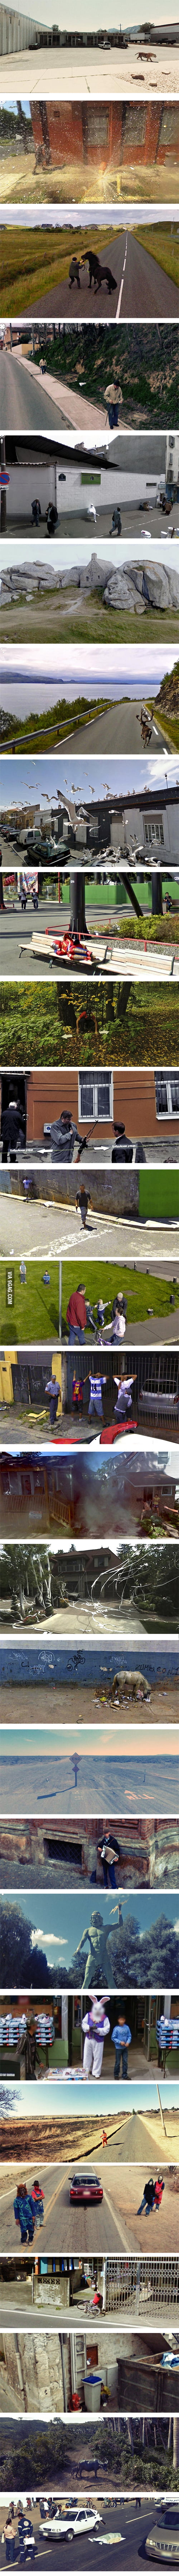 Weird Google Street View!